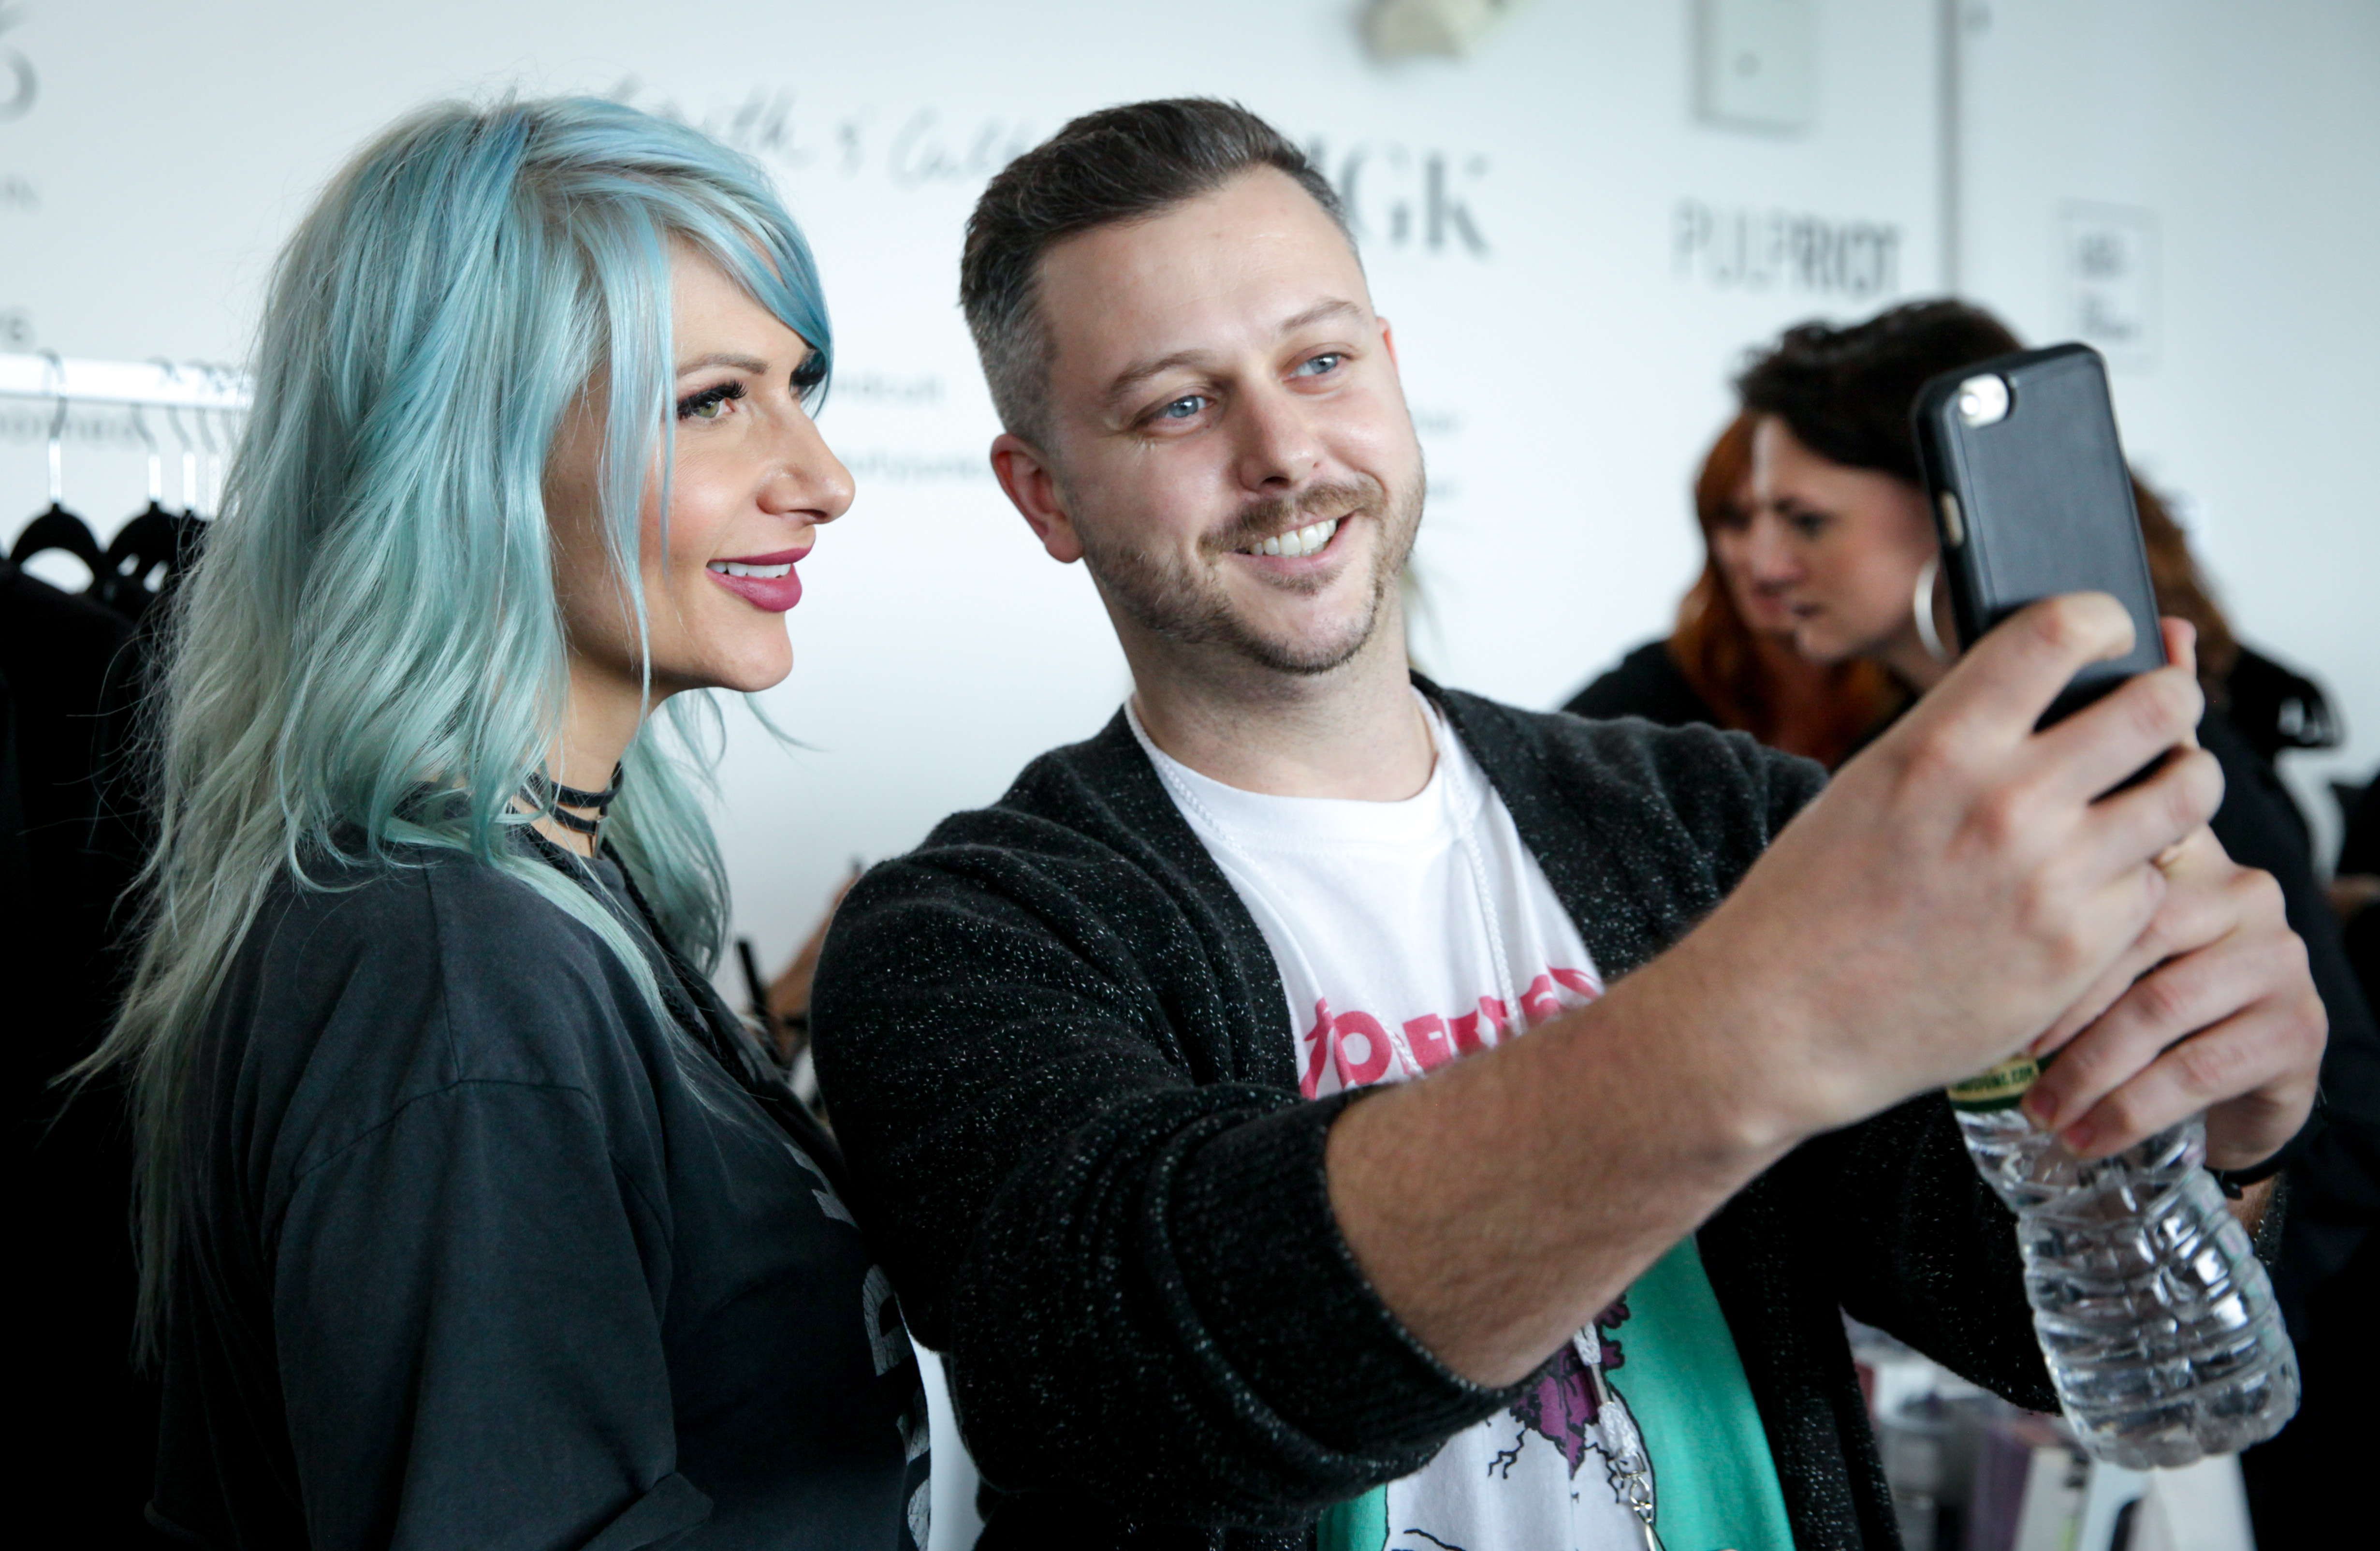 Jenny Strebe (@theconfessionsofahairstylist) and an Idealogue attendee mid-selfie